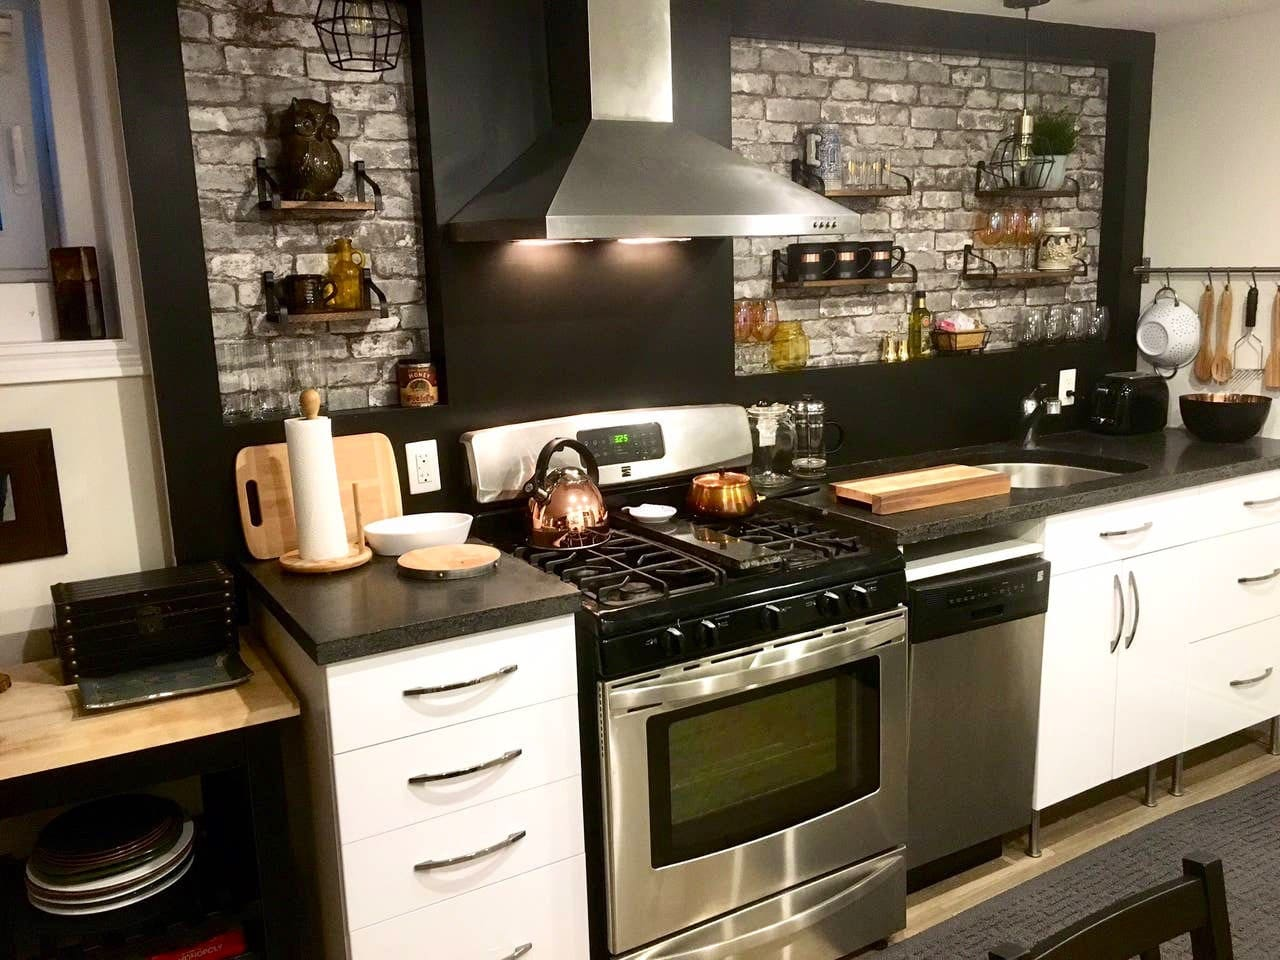 Full beautiful kitchen, recently re-done and designed by a professional interior decorator. Gorgeous gas stove, and fully stocked with everything you could need.